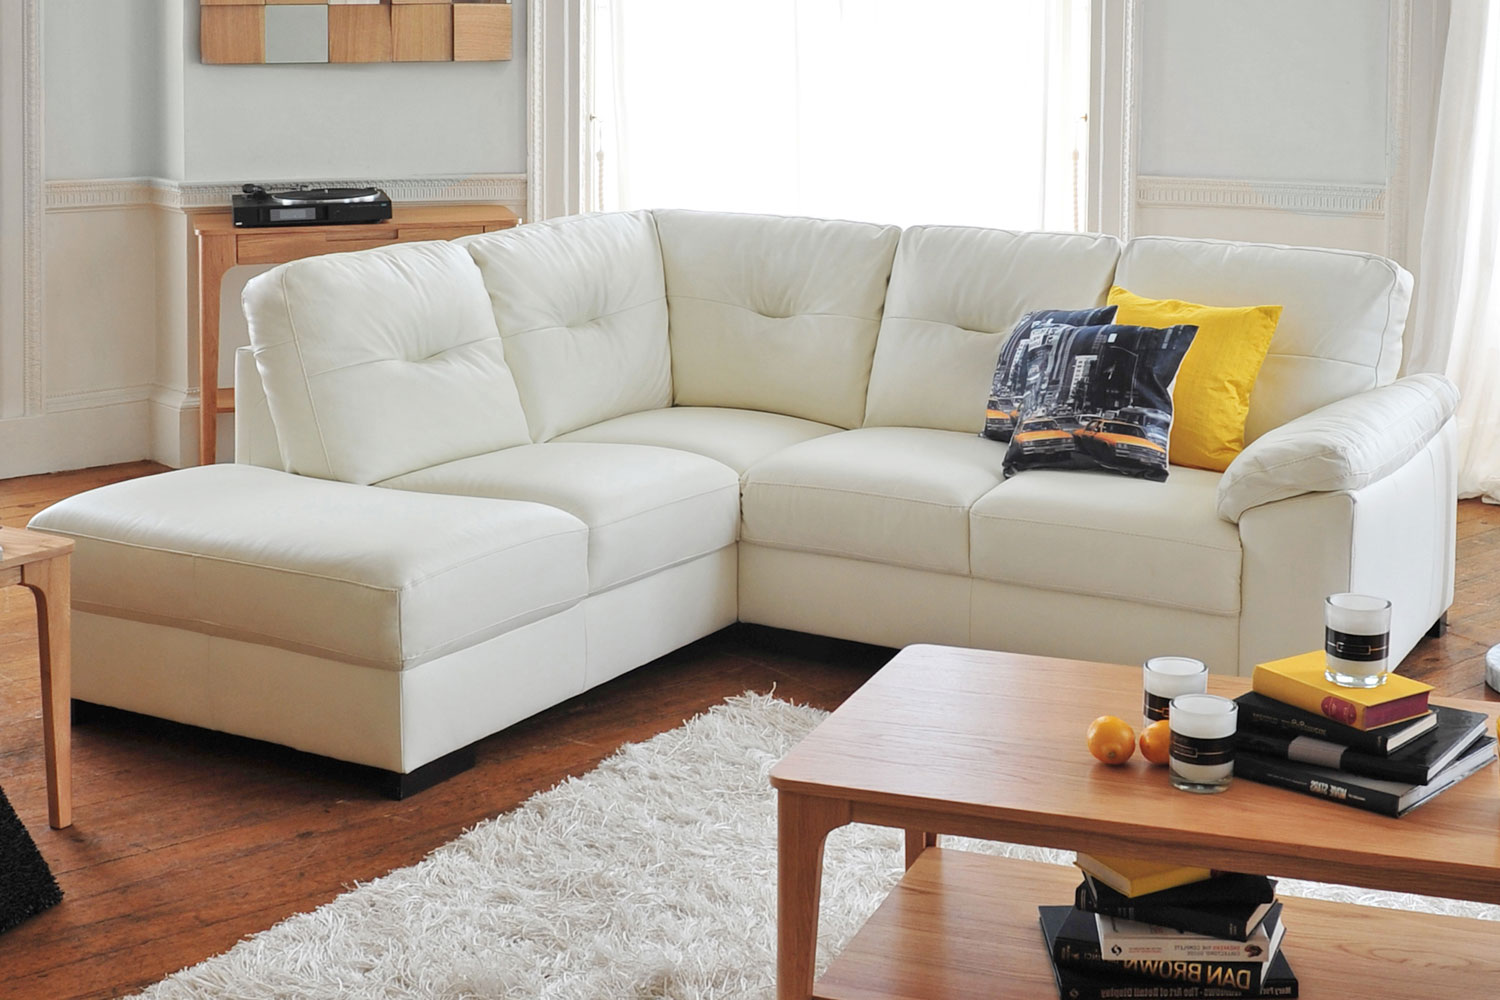 Pictures Of Best Sofa Set Designs 2016 With Corner Sofa And Swivel Chair Sets